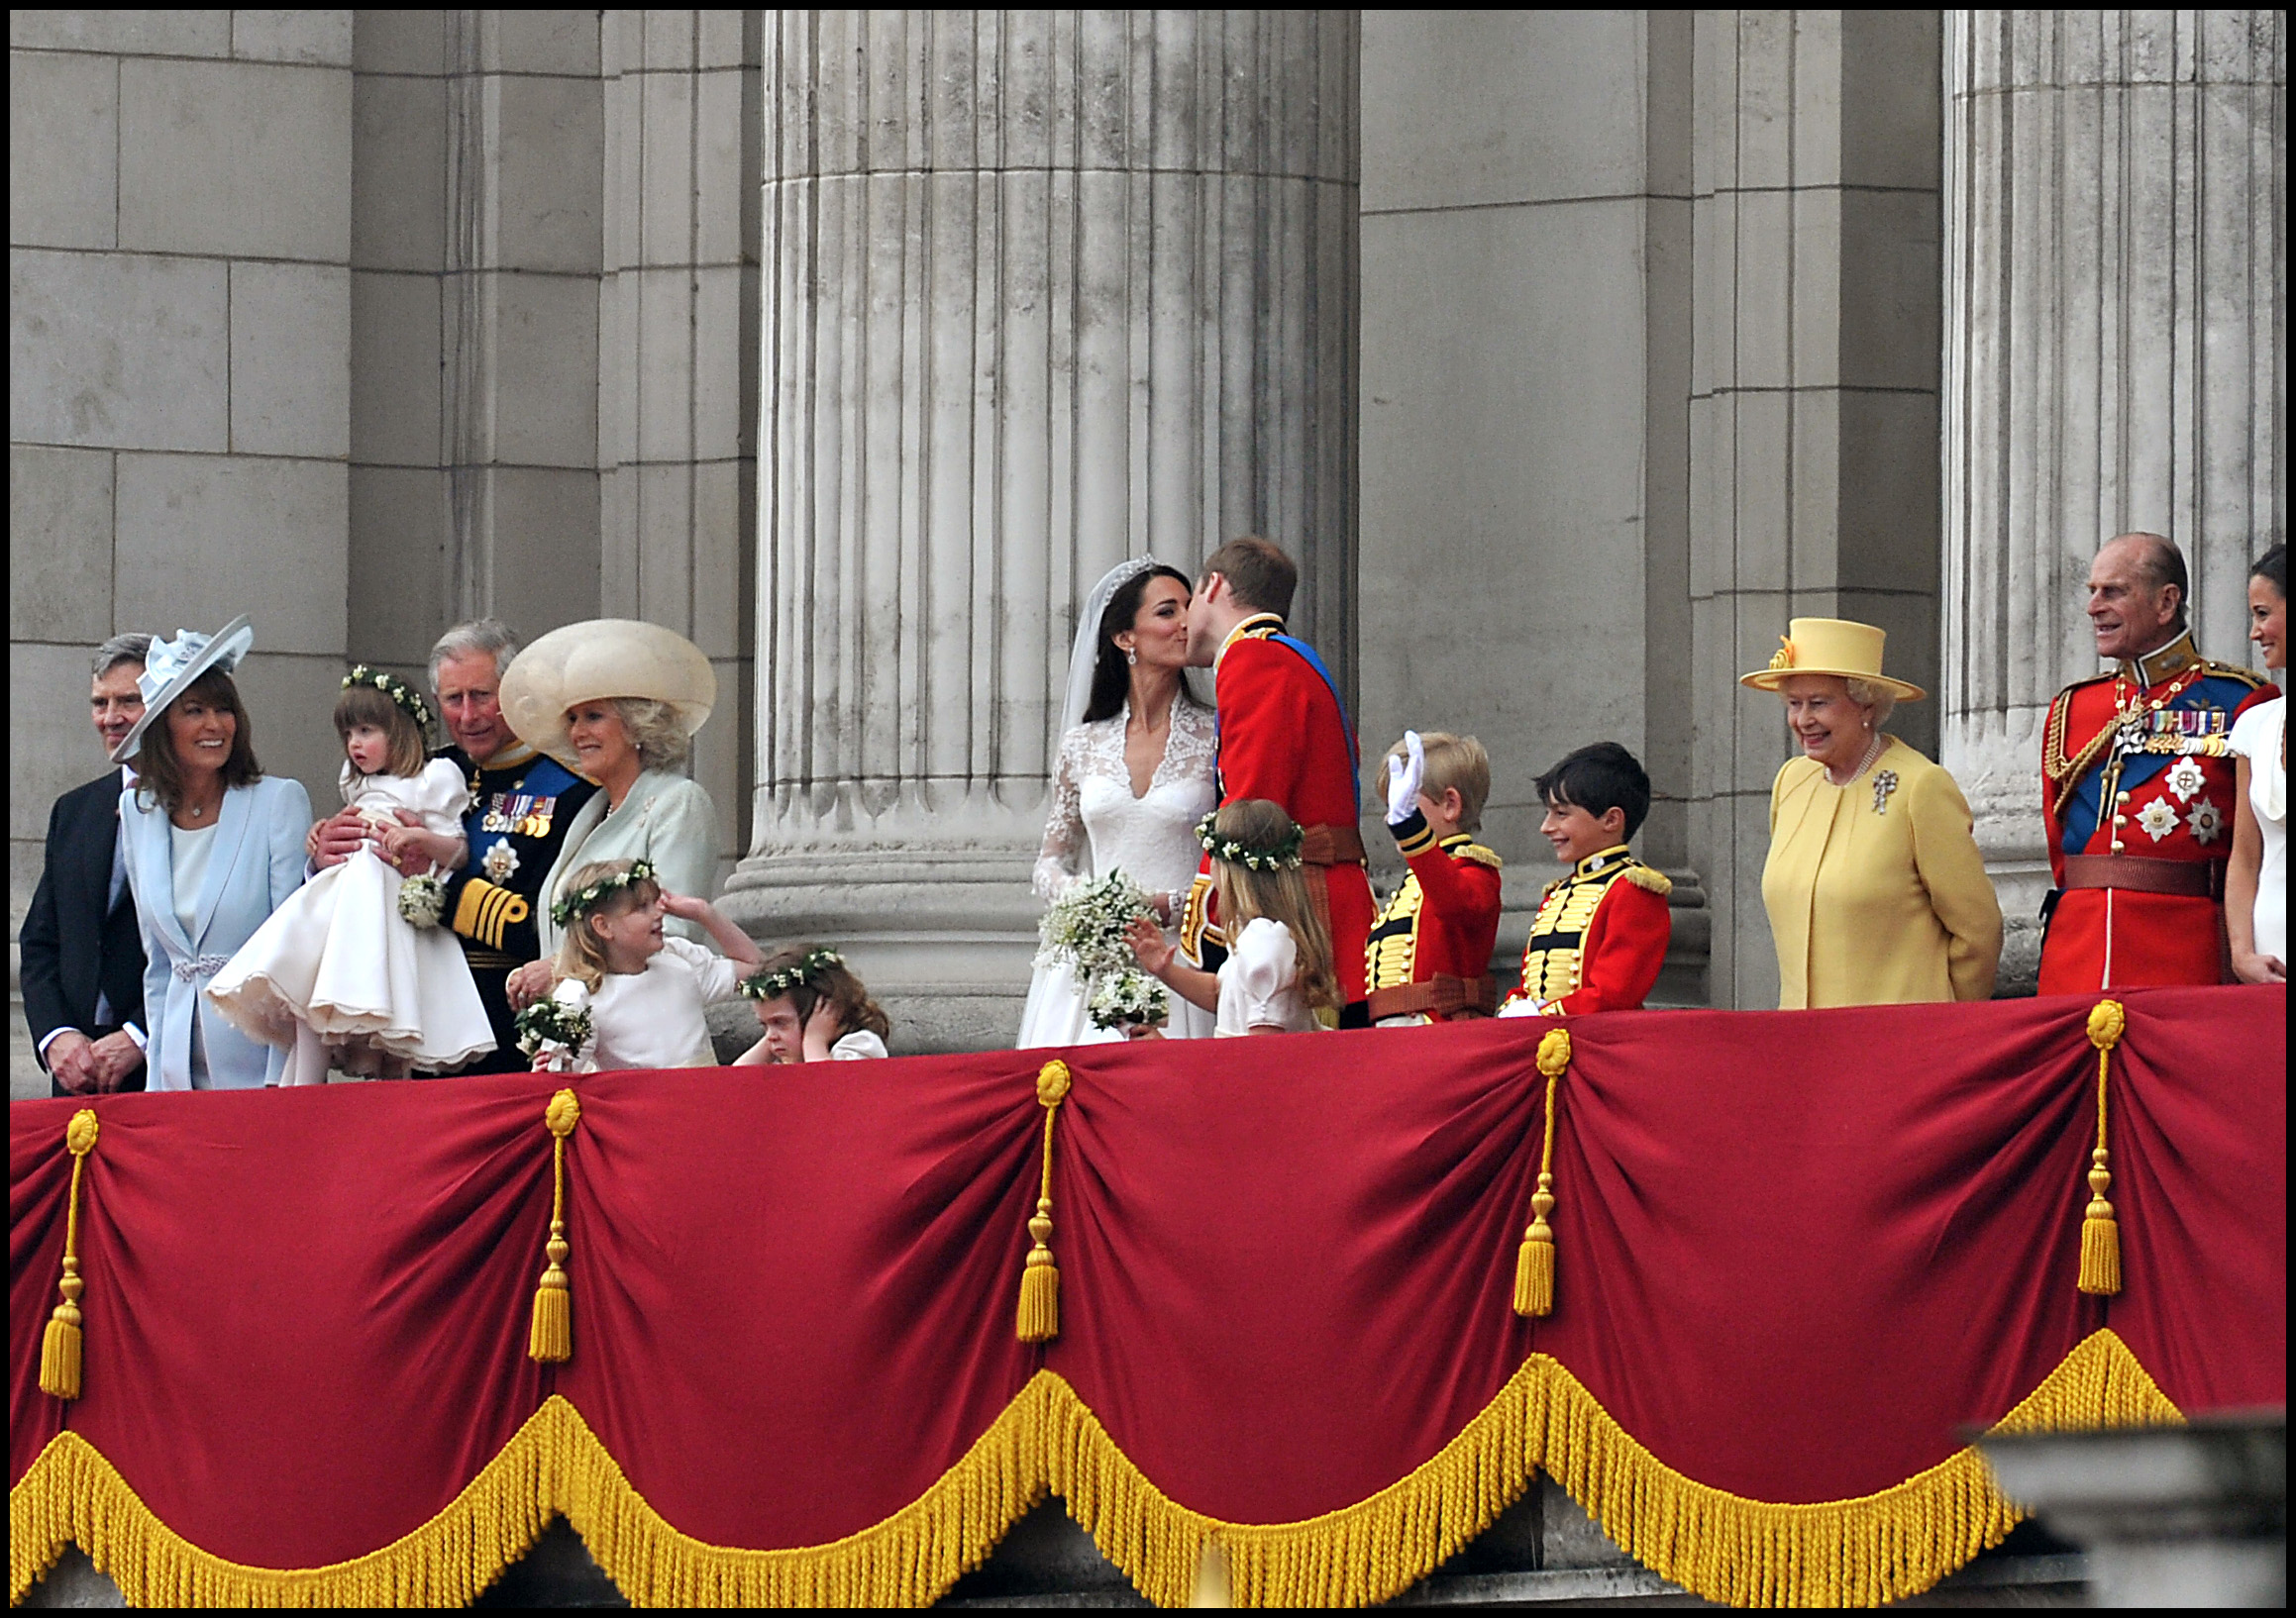 Royal Wedding, Kate & William kiss on the balcony of Buckingham Palace, 29th April 2011. Photographer: Mark Allan.